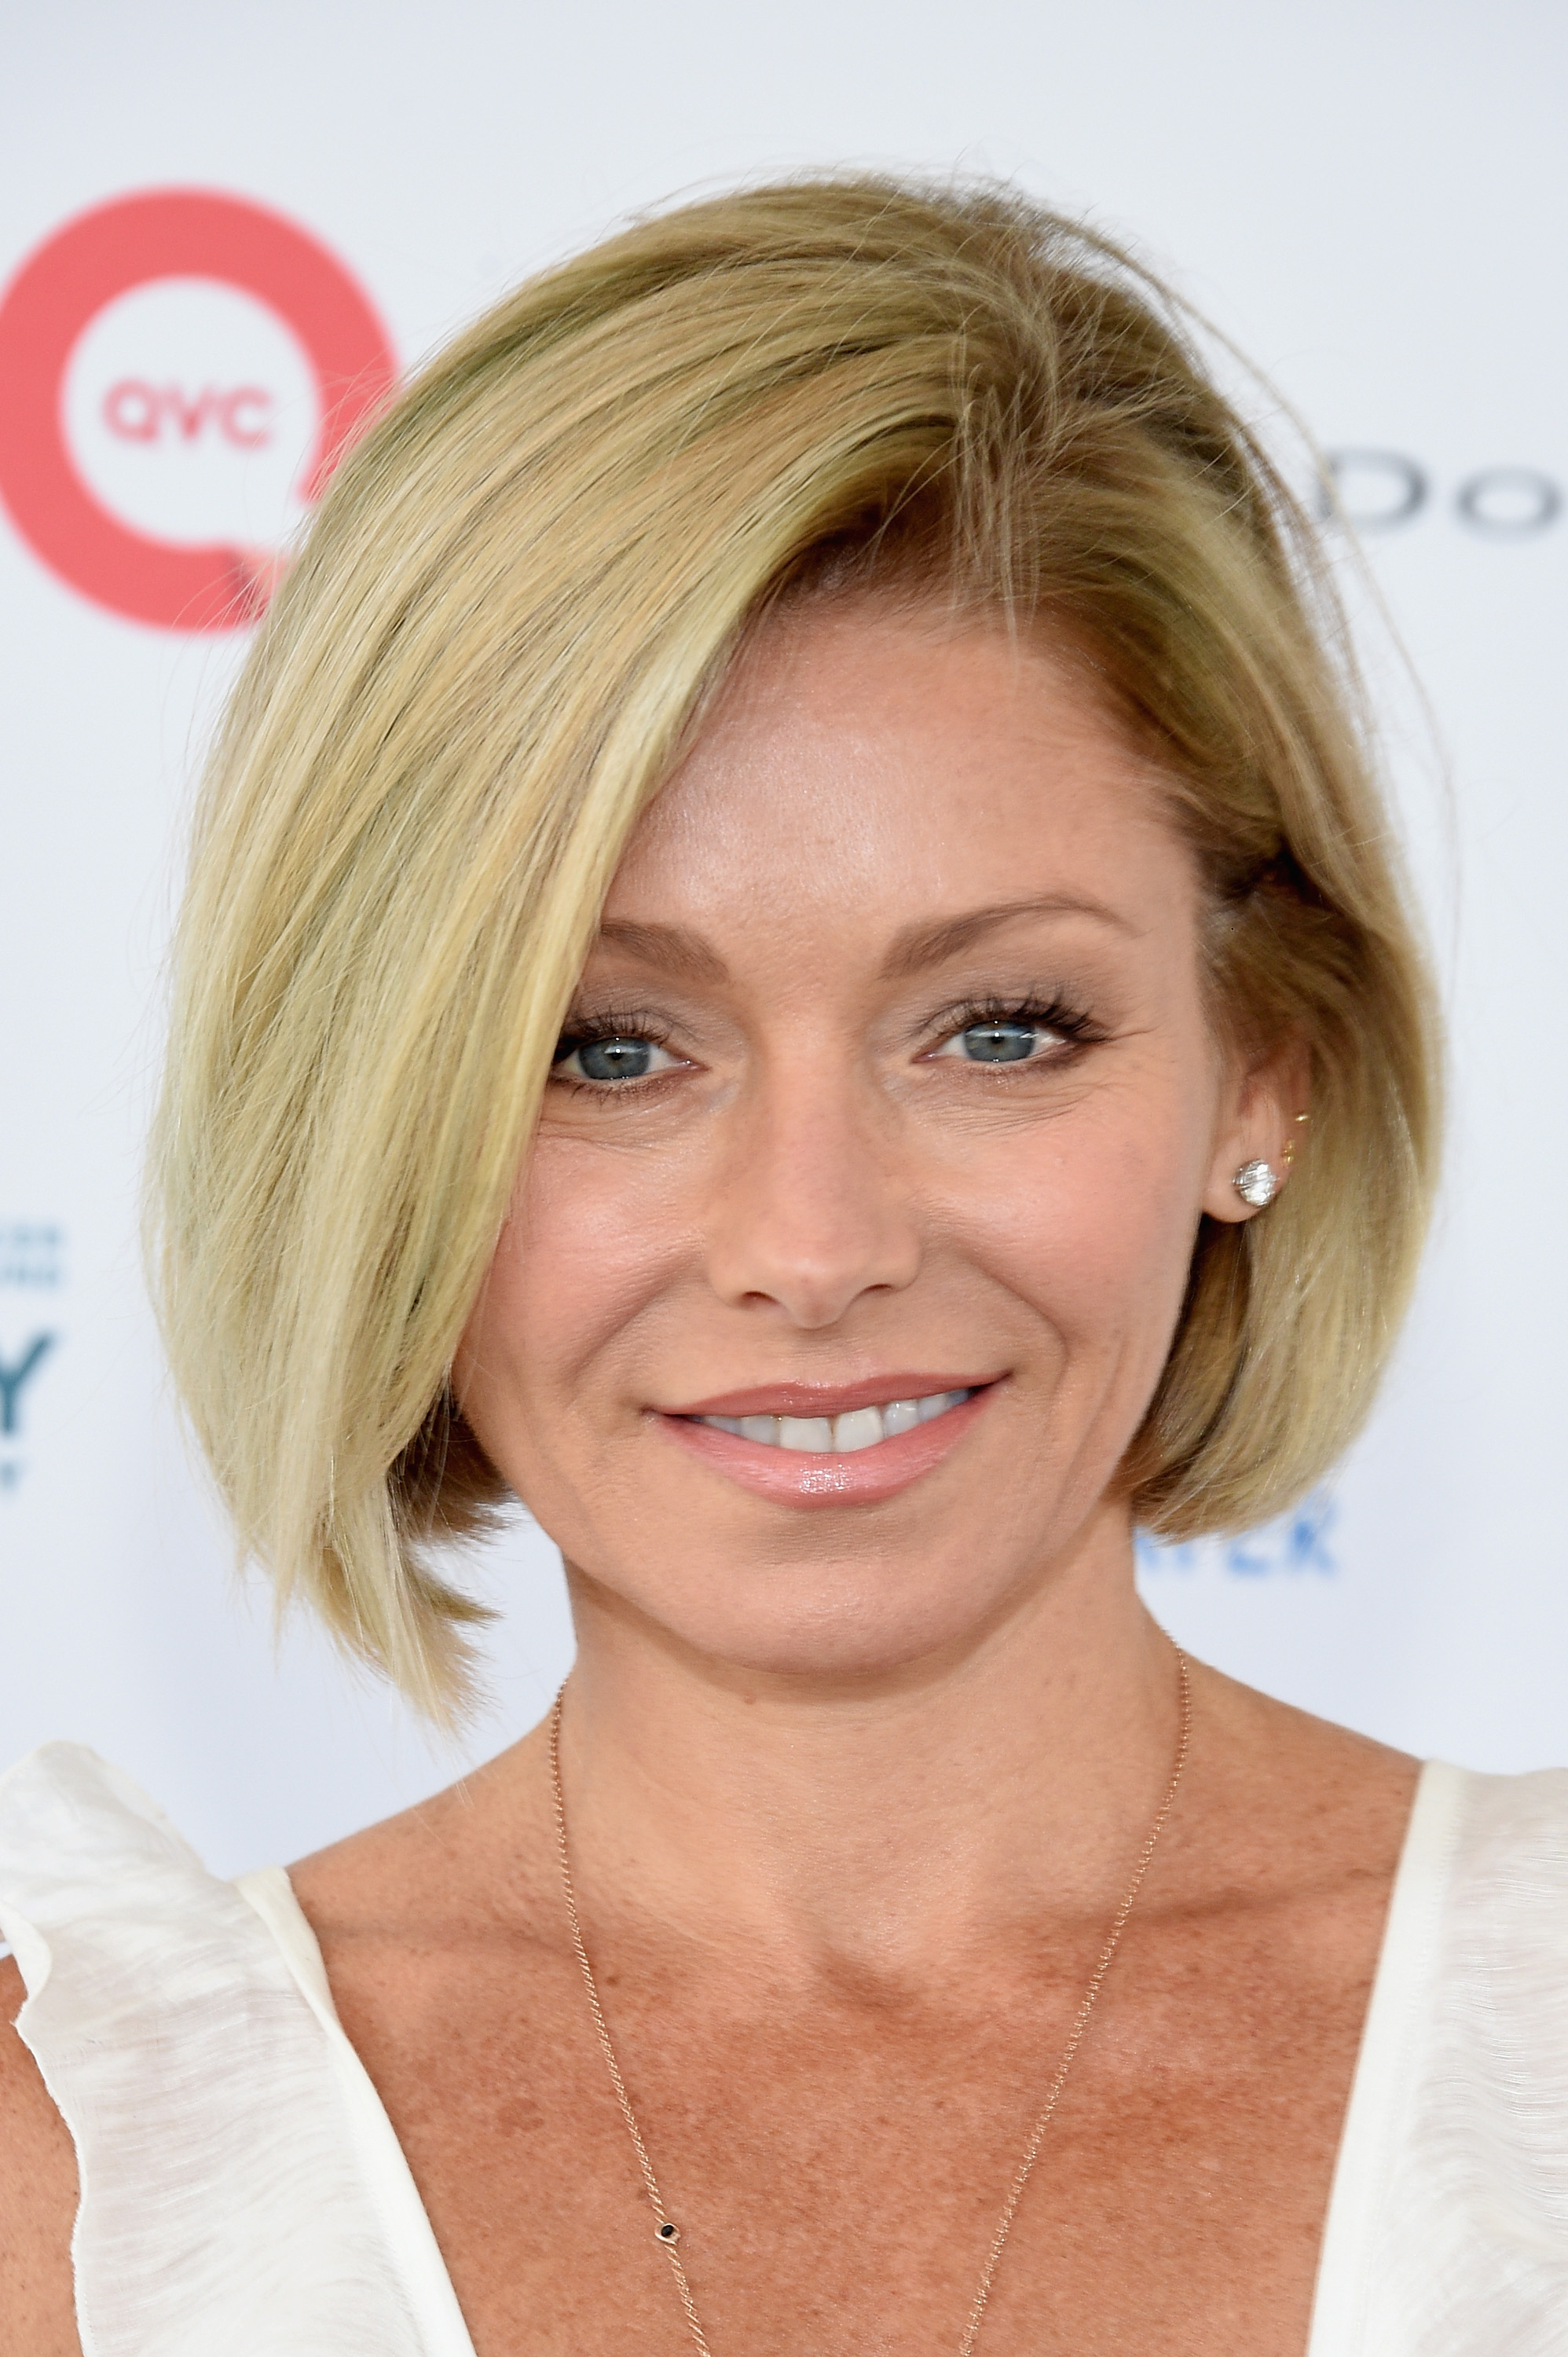 Groovy Best Hairstyle Of The Day Celebrity Haircuts And Hair Color Ideas Short Hairstyles Gunalazisus